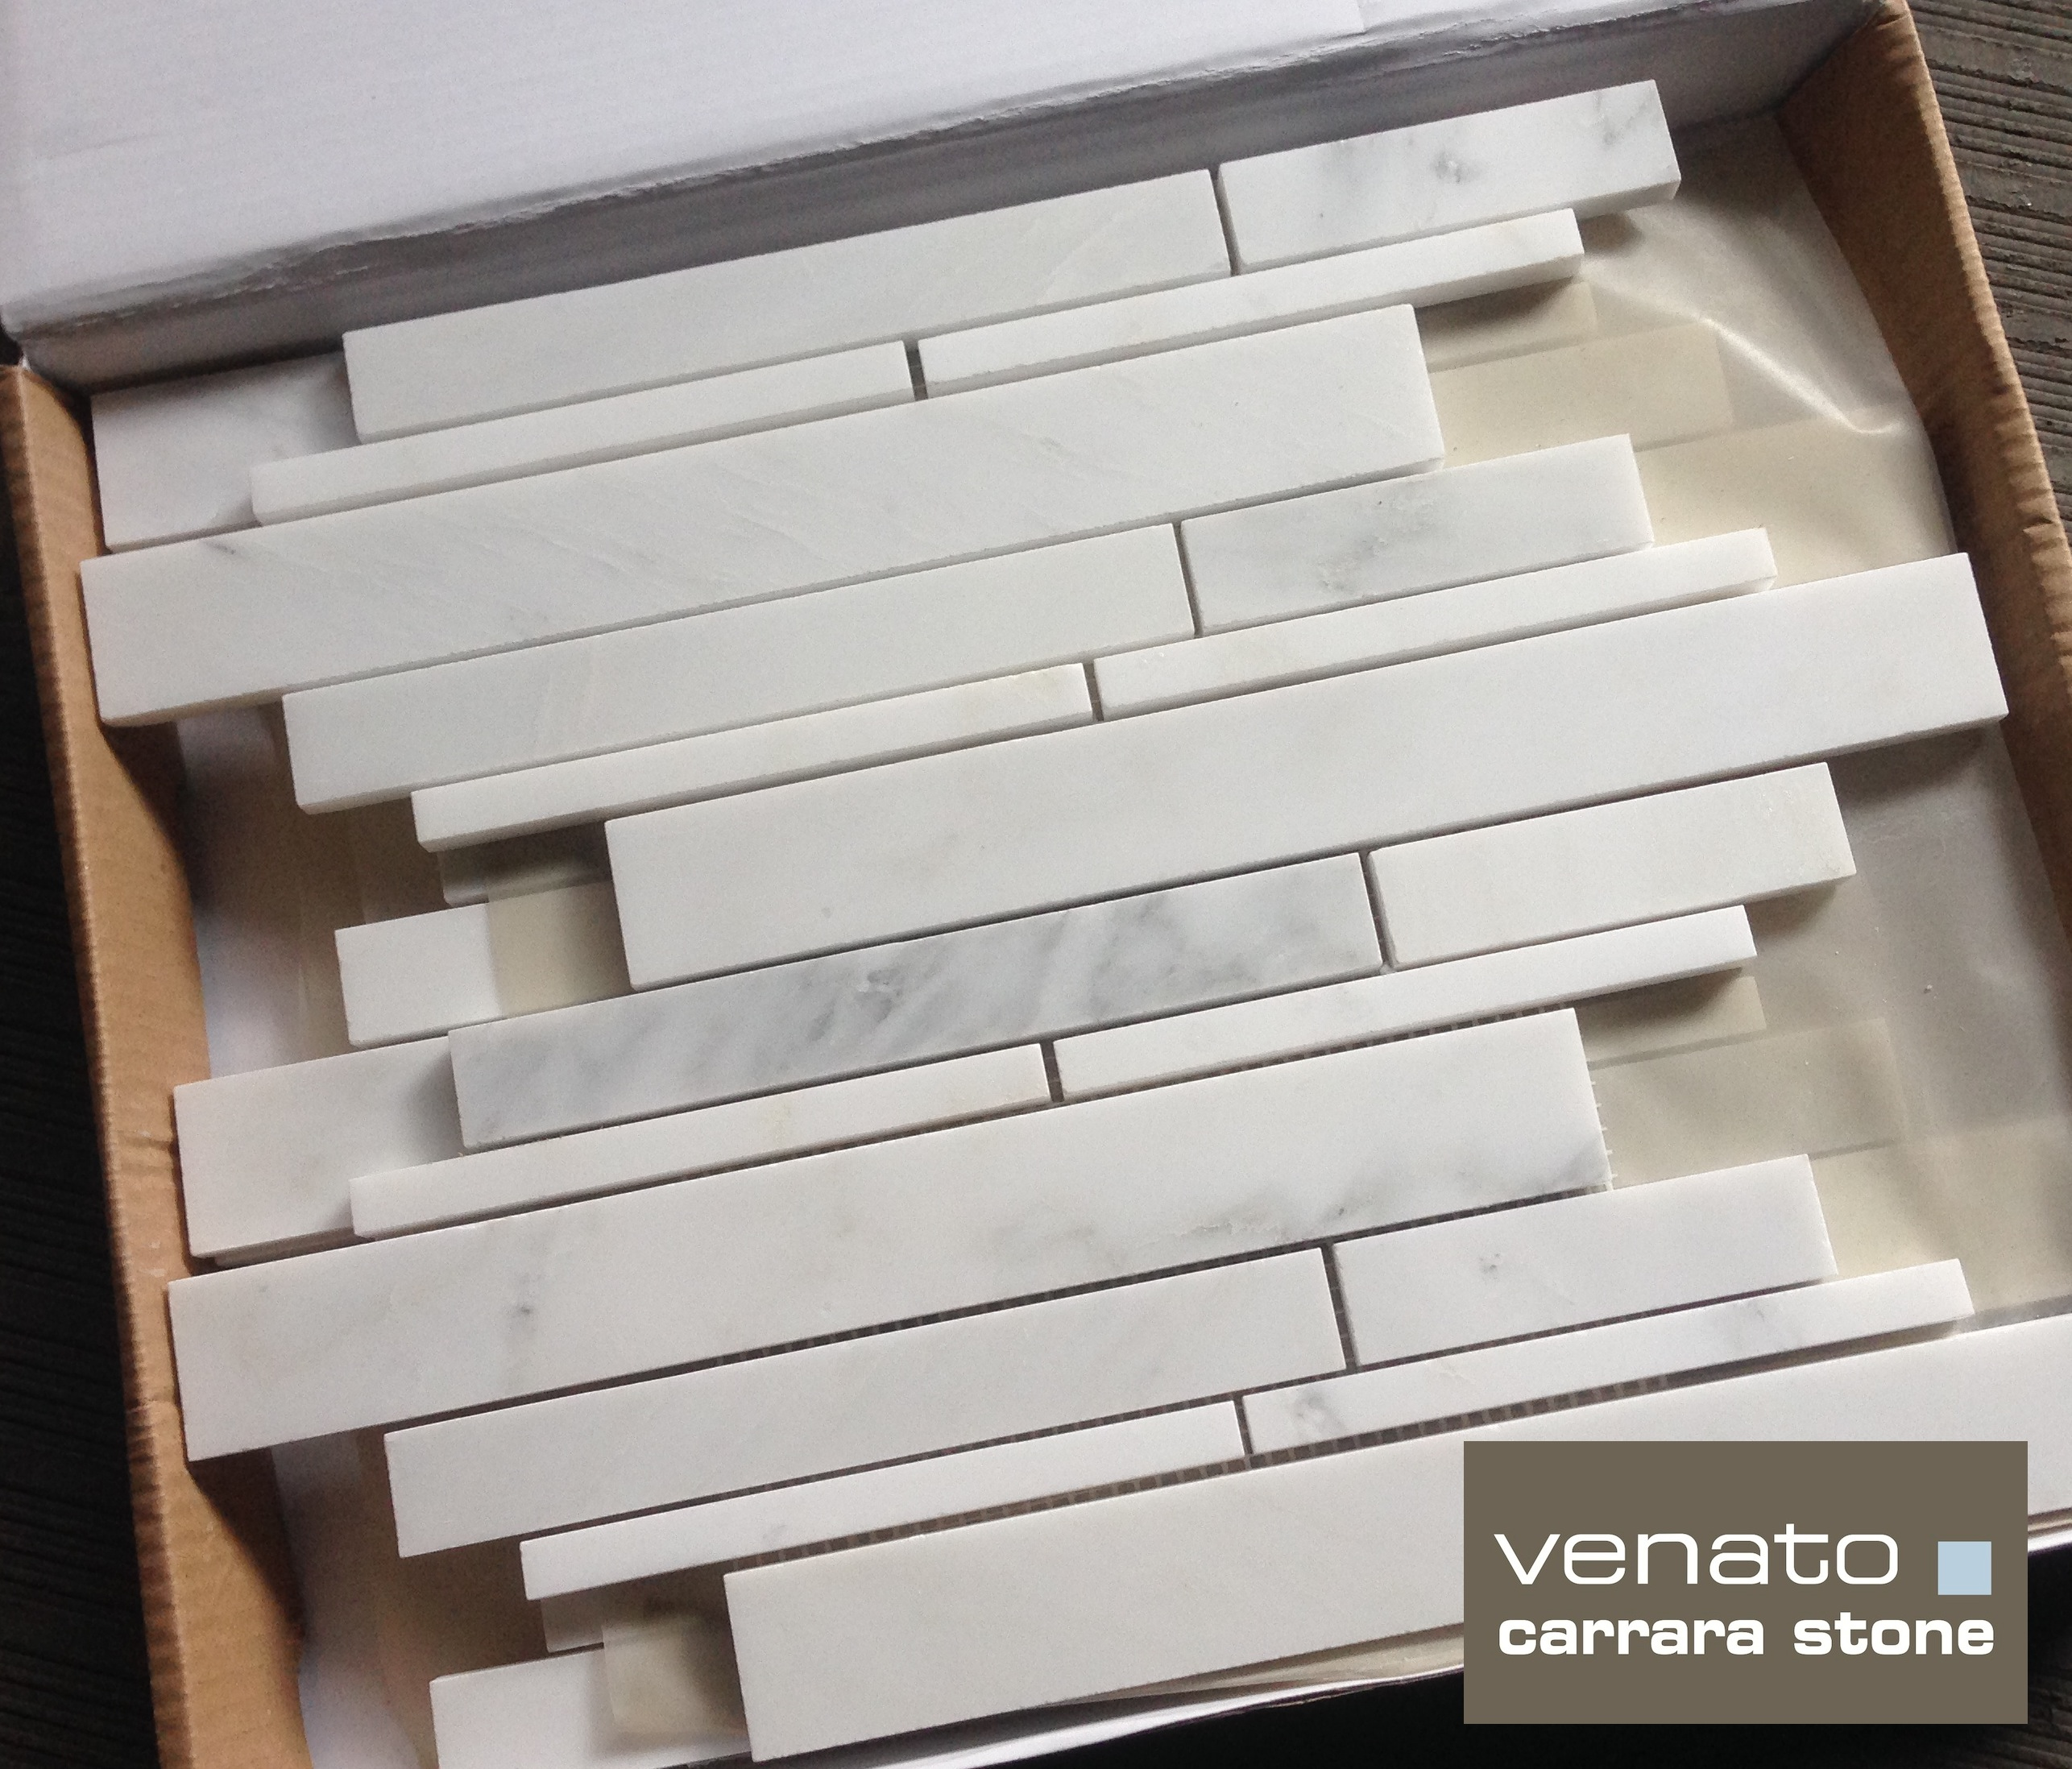 Carrara venato honed random brick marble mosaic tile the builder carrara venato random brick marble mosaic tile dailygadgetfo Images